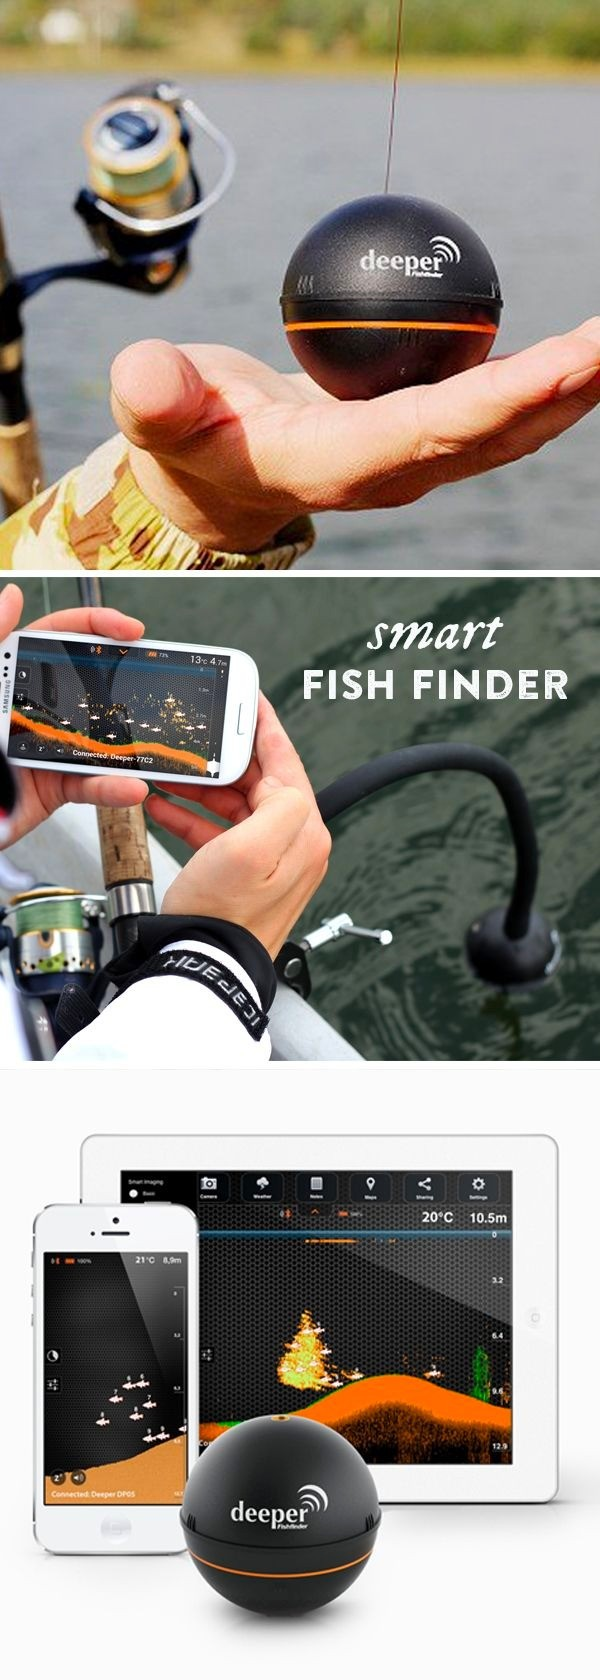 smart fishfinder by deeper, Fish Finder